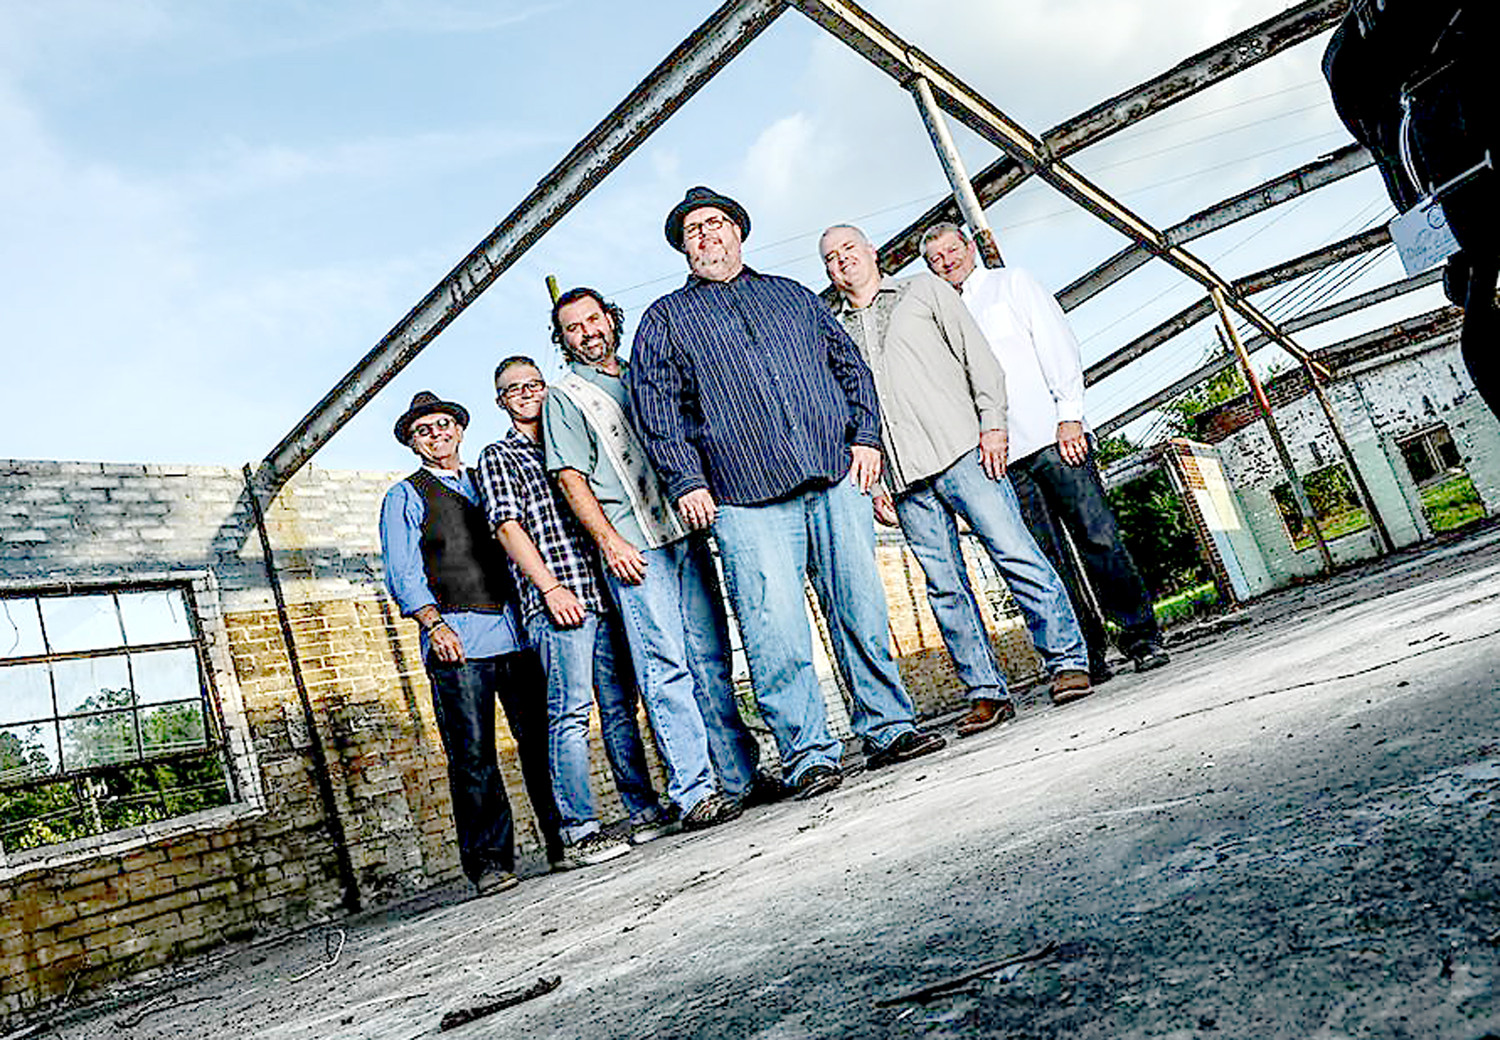 "Soul Talk band members include John Buckner (lead guitar and vocals), Randy Parker (acoustic guitar and vocals), Sandy Hankins (rhythm guitar and vocals), Scott McAllister (bass guitar and vocals), Paxton Bennett (drums), and Mickey ""Moose"" Hall (percussion)."